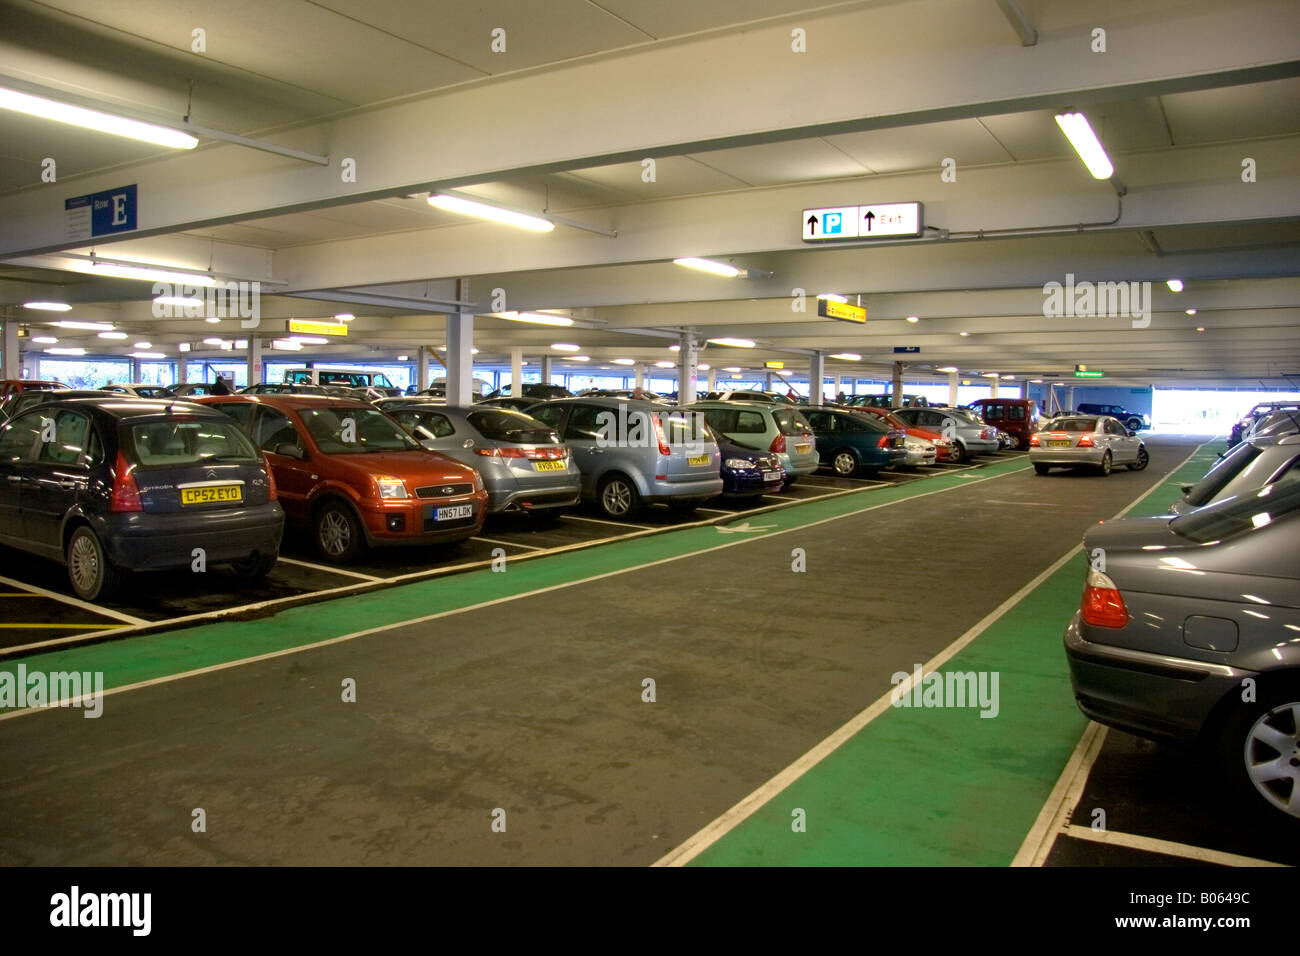 View of cars parked in multistorey car park in Southampton regional airport - Stock Image